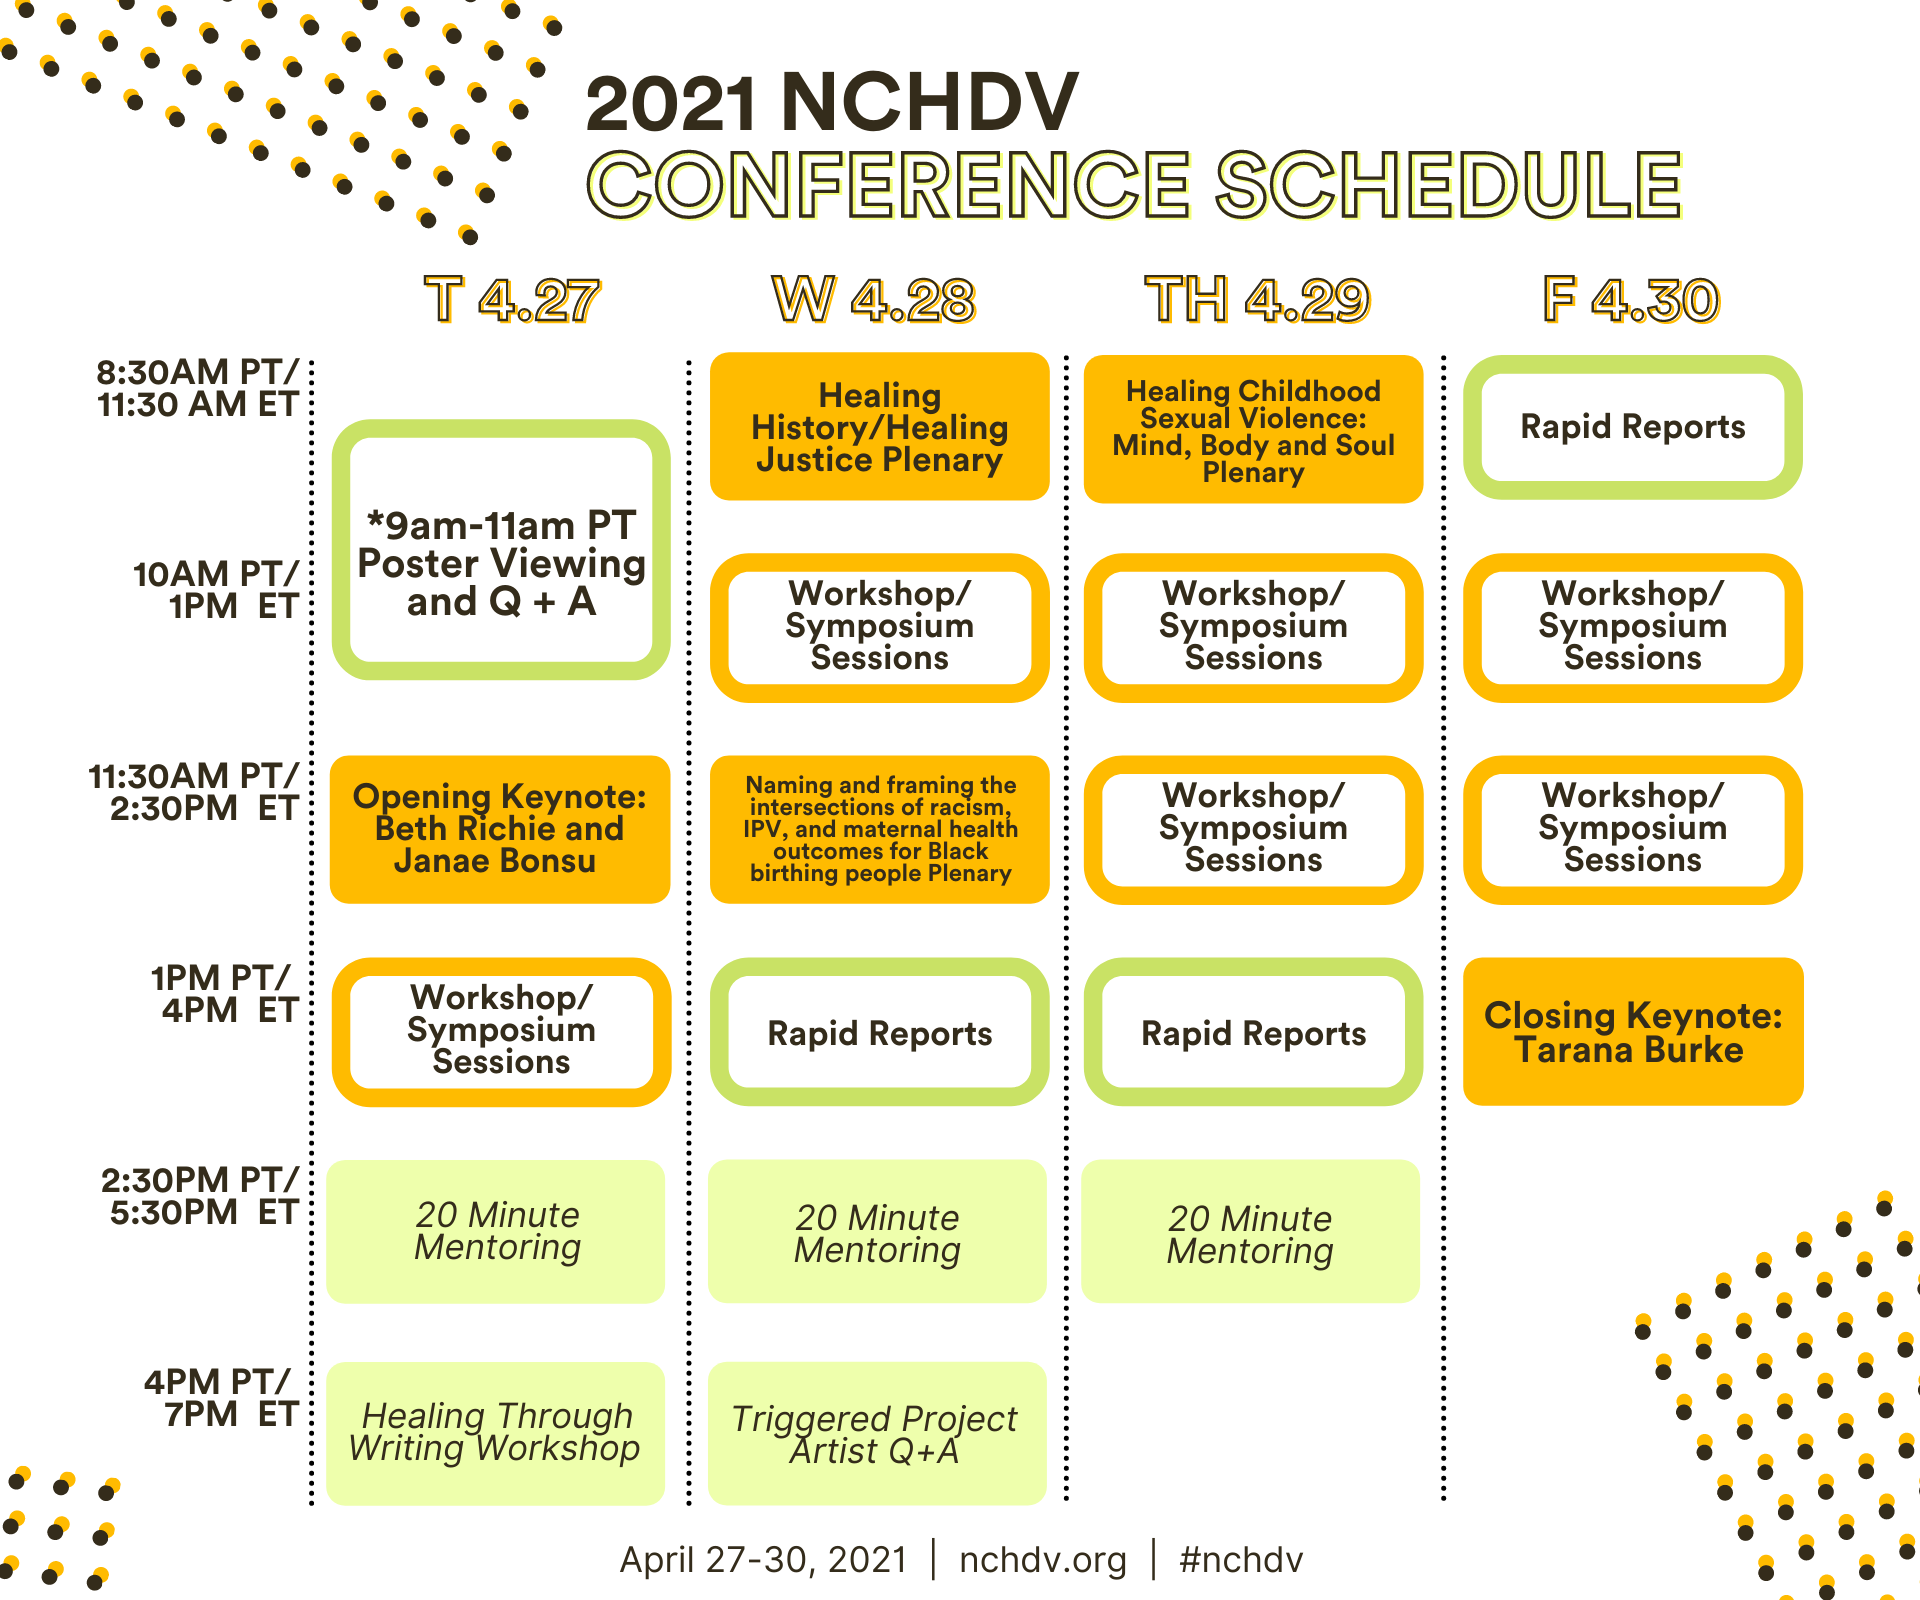 Picture of conference schedule in English. To view the schedule with a screen reader visit https://nchdv.confex.com/nchdv/2020/meetingapp.cgi/Day/2021-04-27.